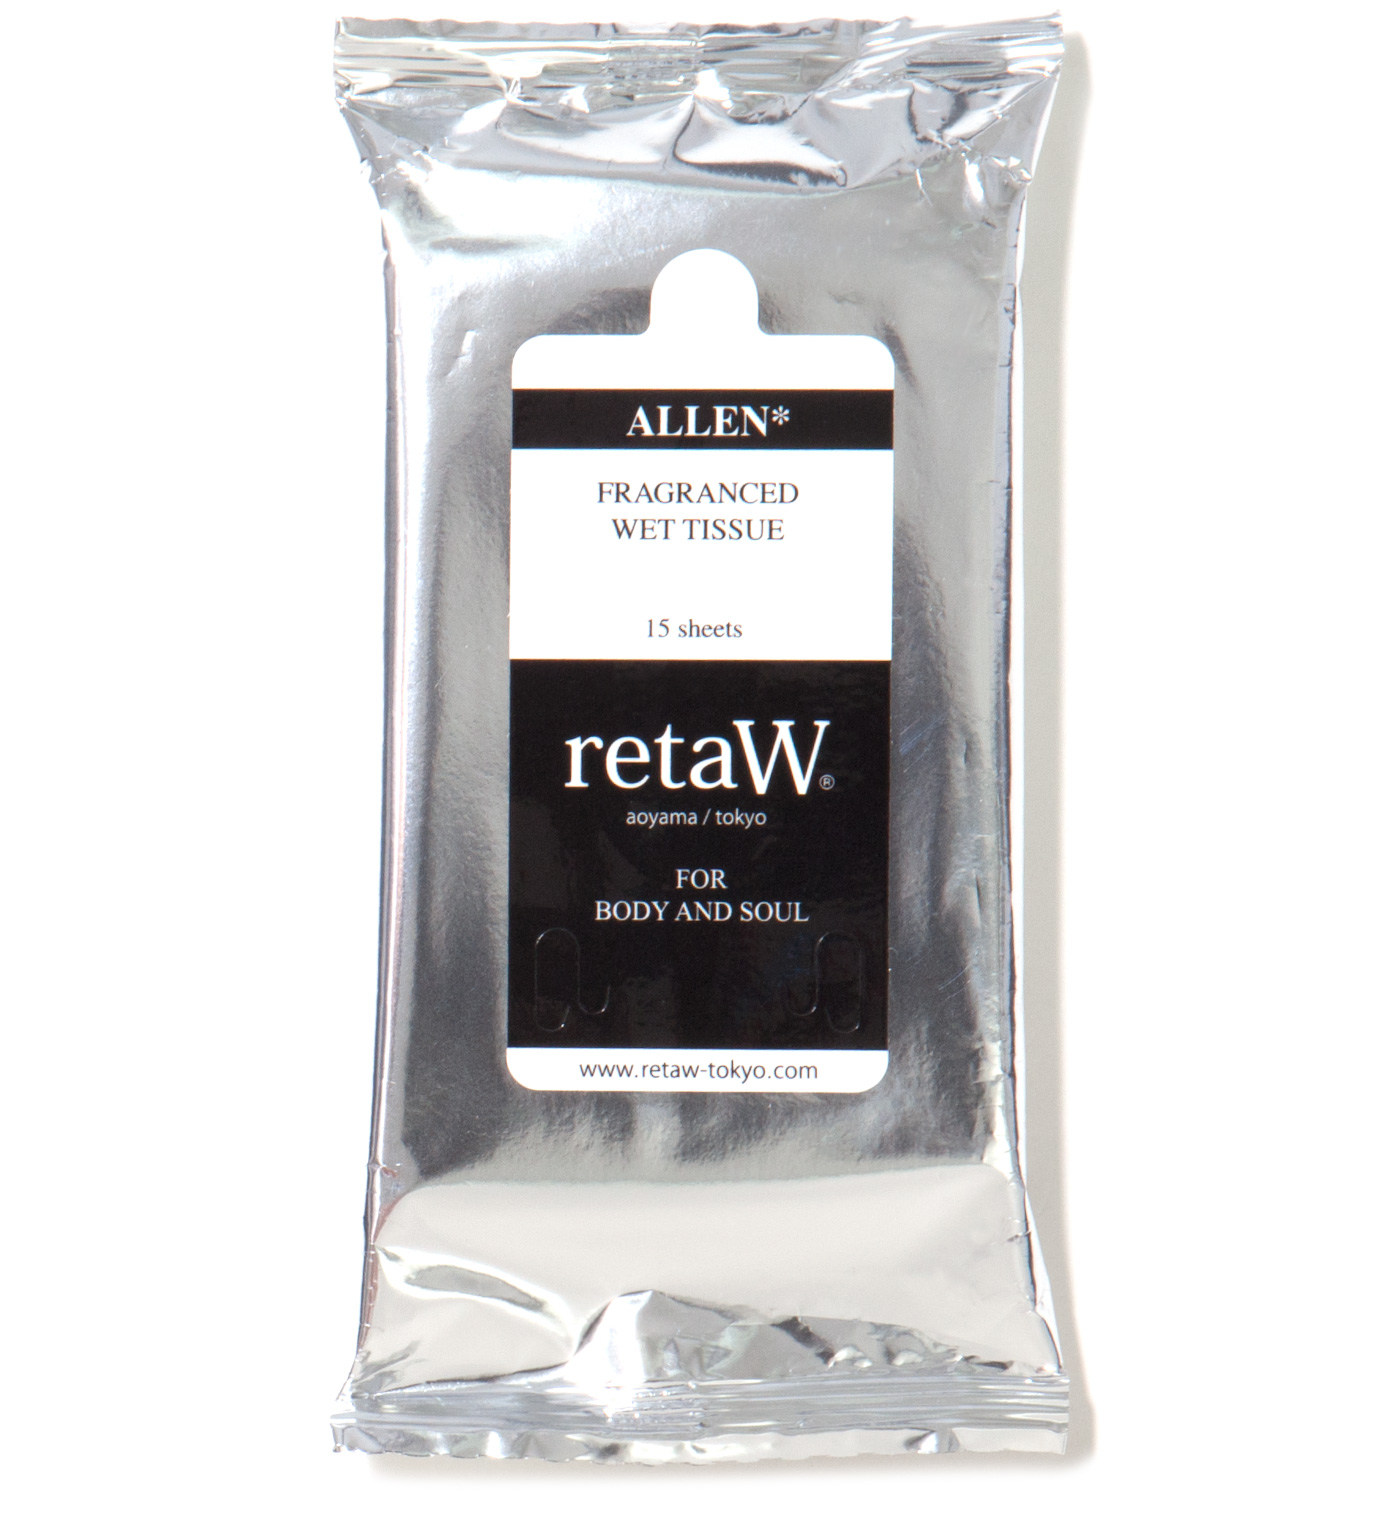 retaW Allen Fragranced Wet Tissue